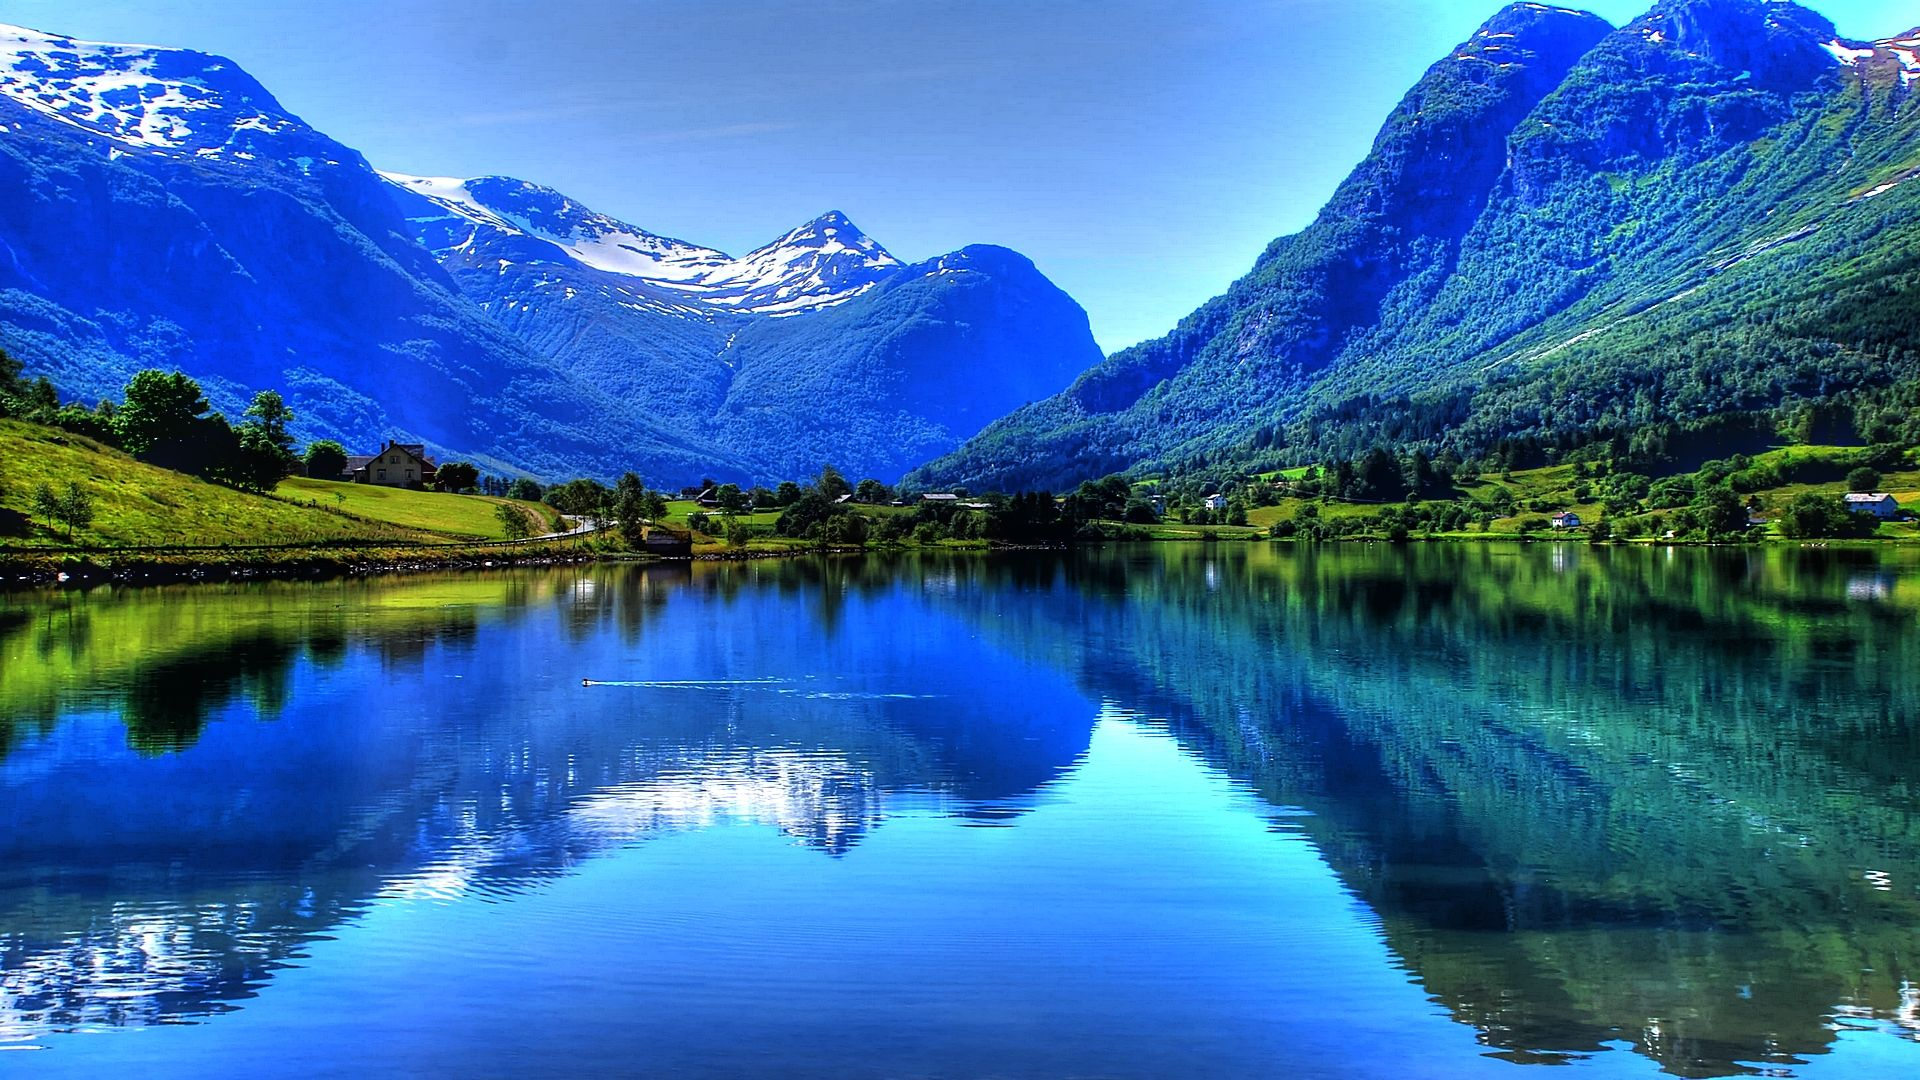 Ultra High Resolution Nature Wallpapers - Top Free Ultra ...